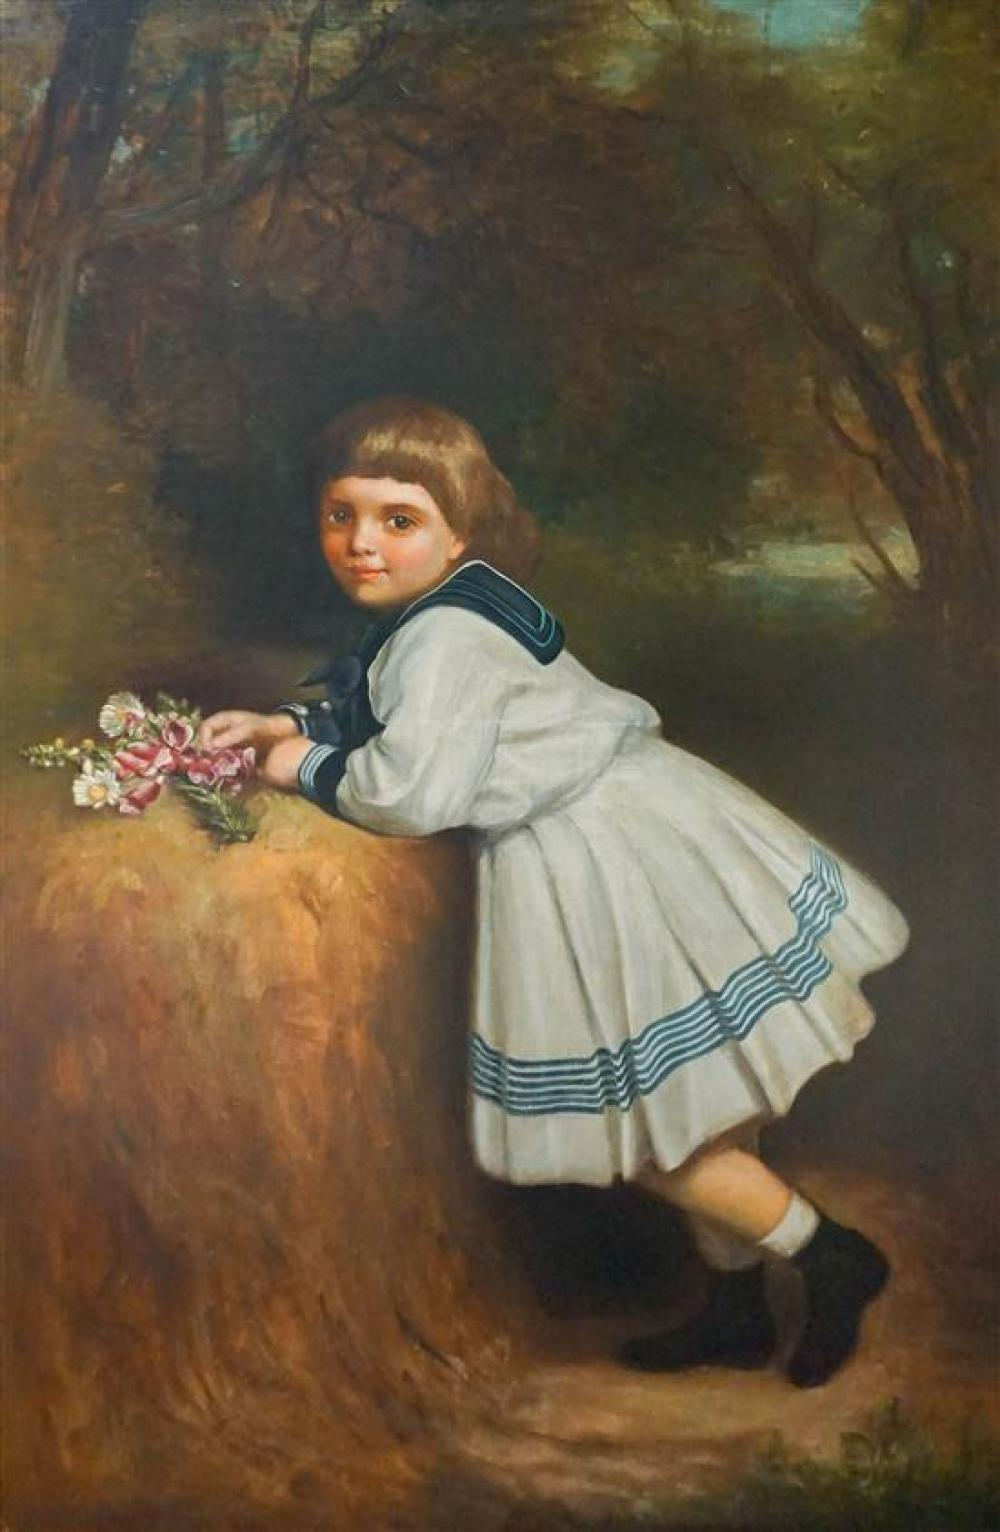 American School, Circa 1900, Young Girl with Bouquet of Flowers in a Forest, Oil on Canvas, 53 x 35-1/2 in